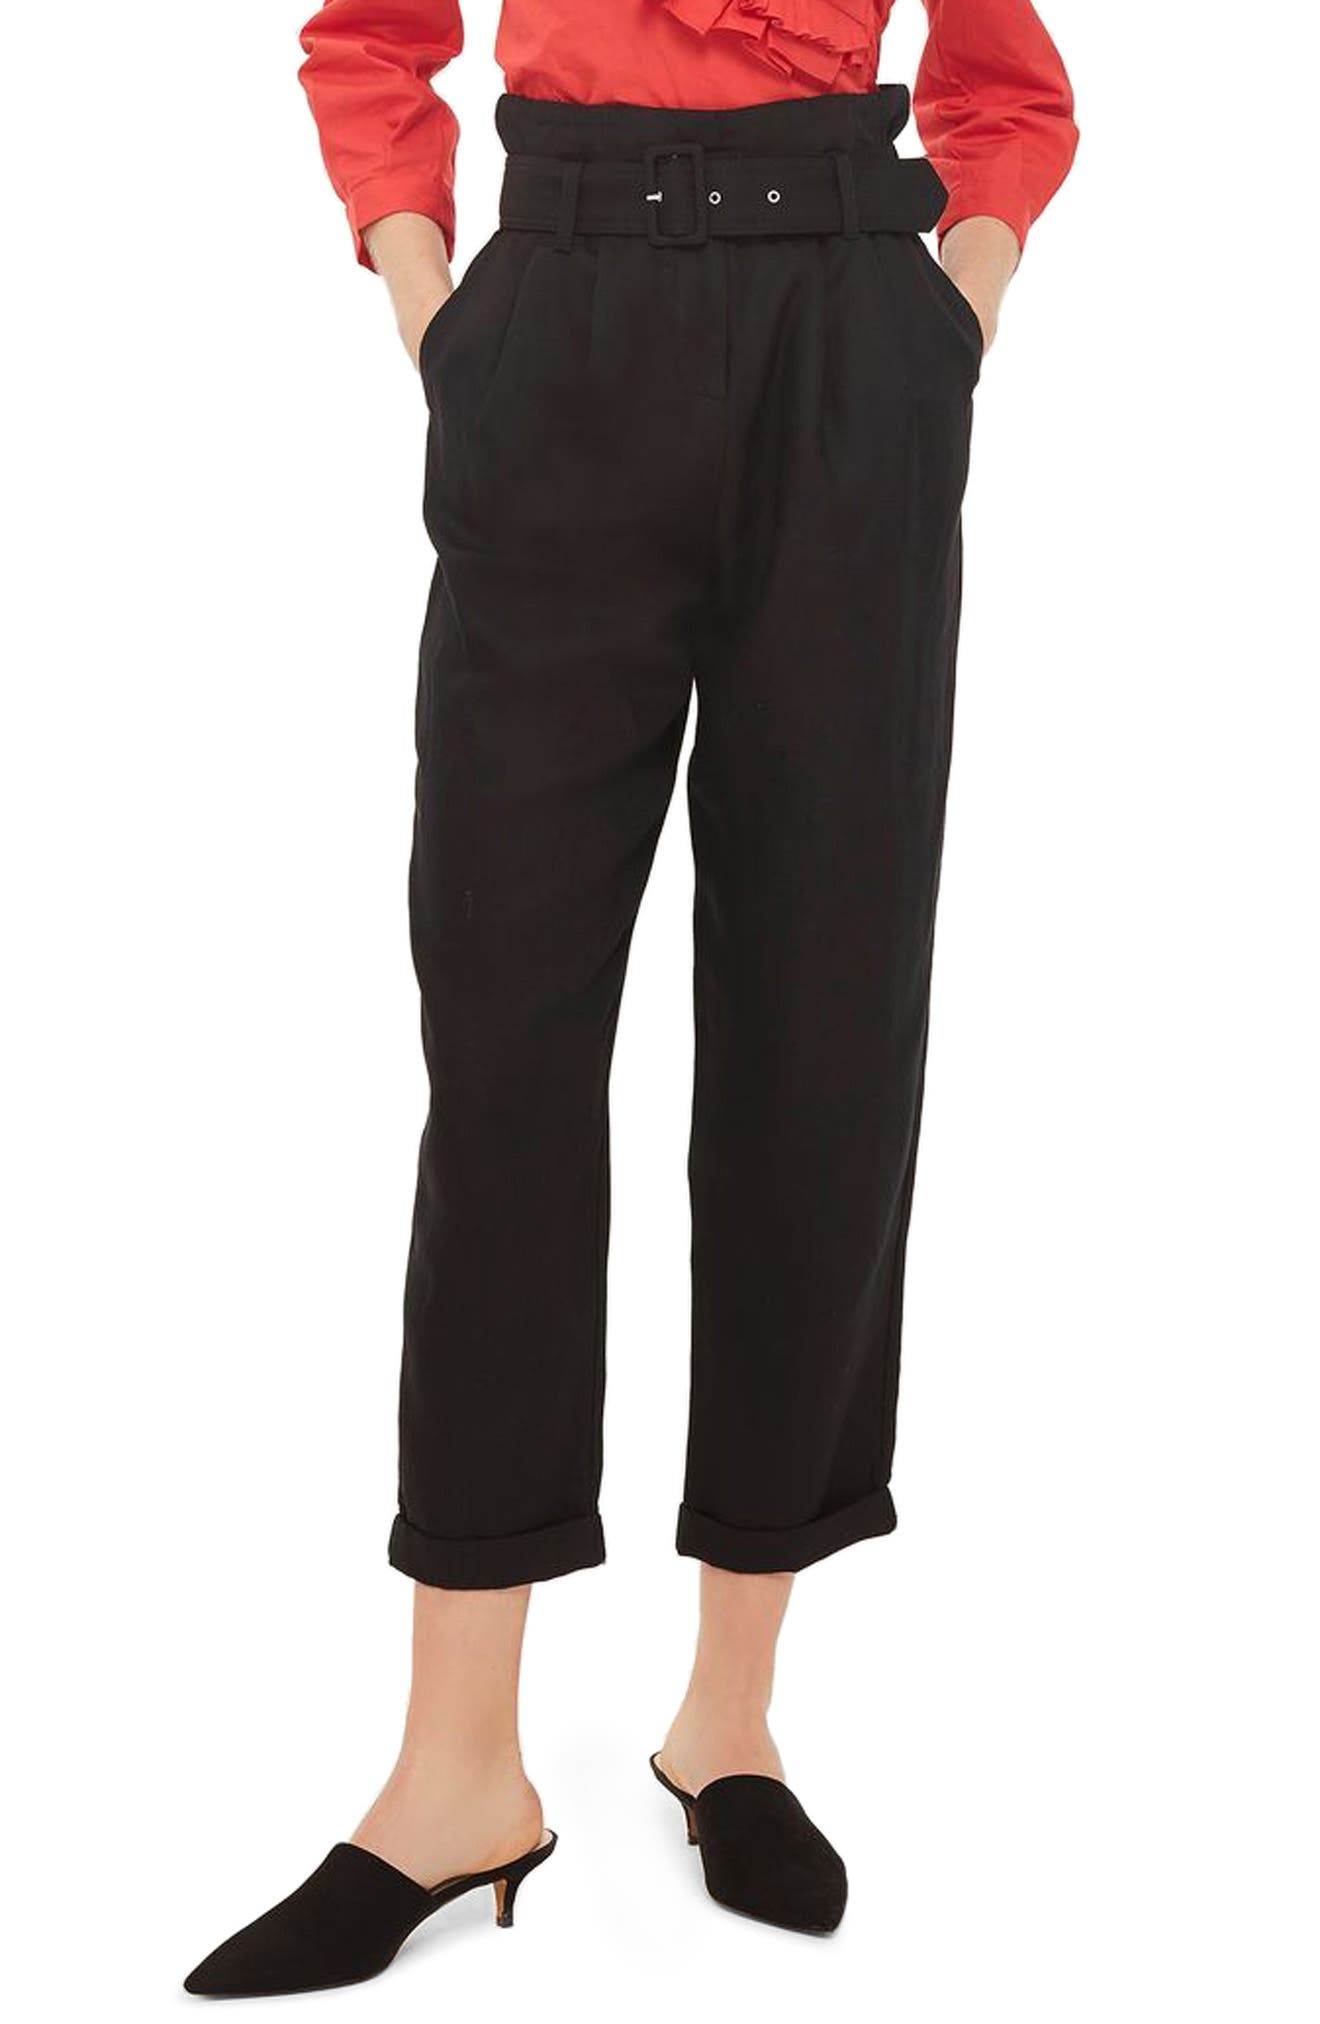 Mensy Belted Trousers,                             Main thumbnail 1, color,                             001